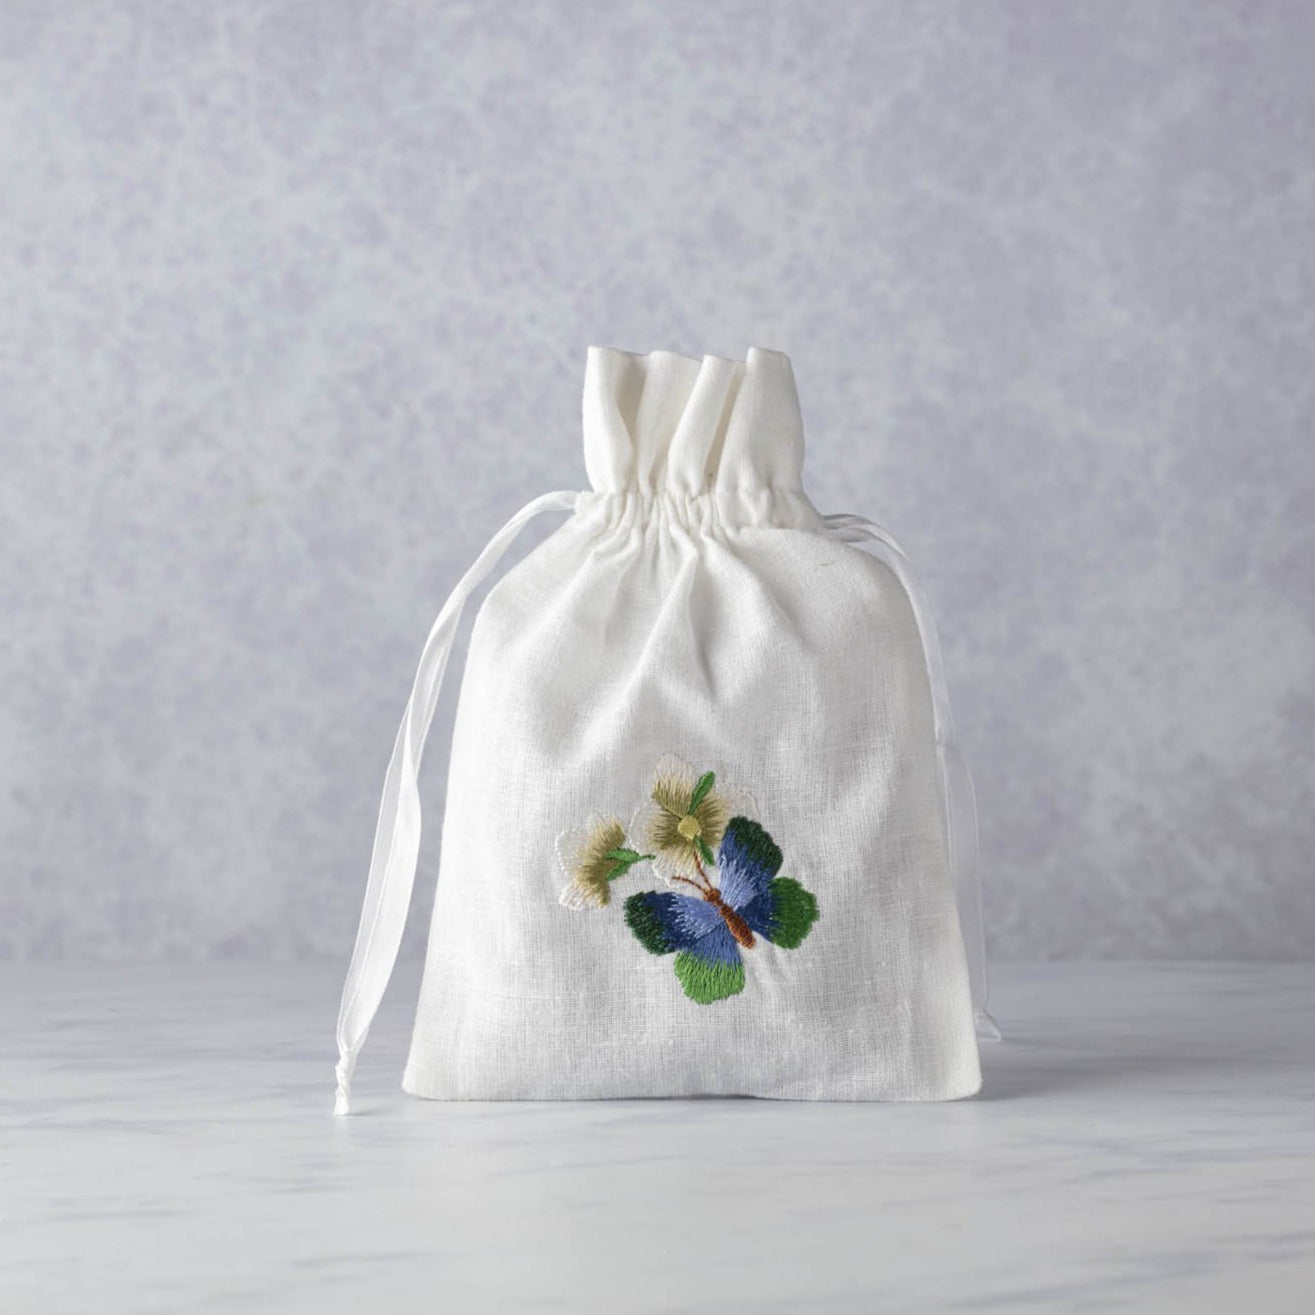 Lavandin Embroidered Cotton Sachet